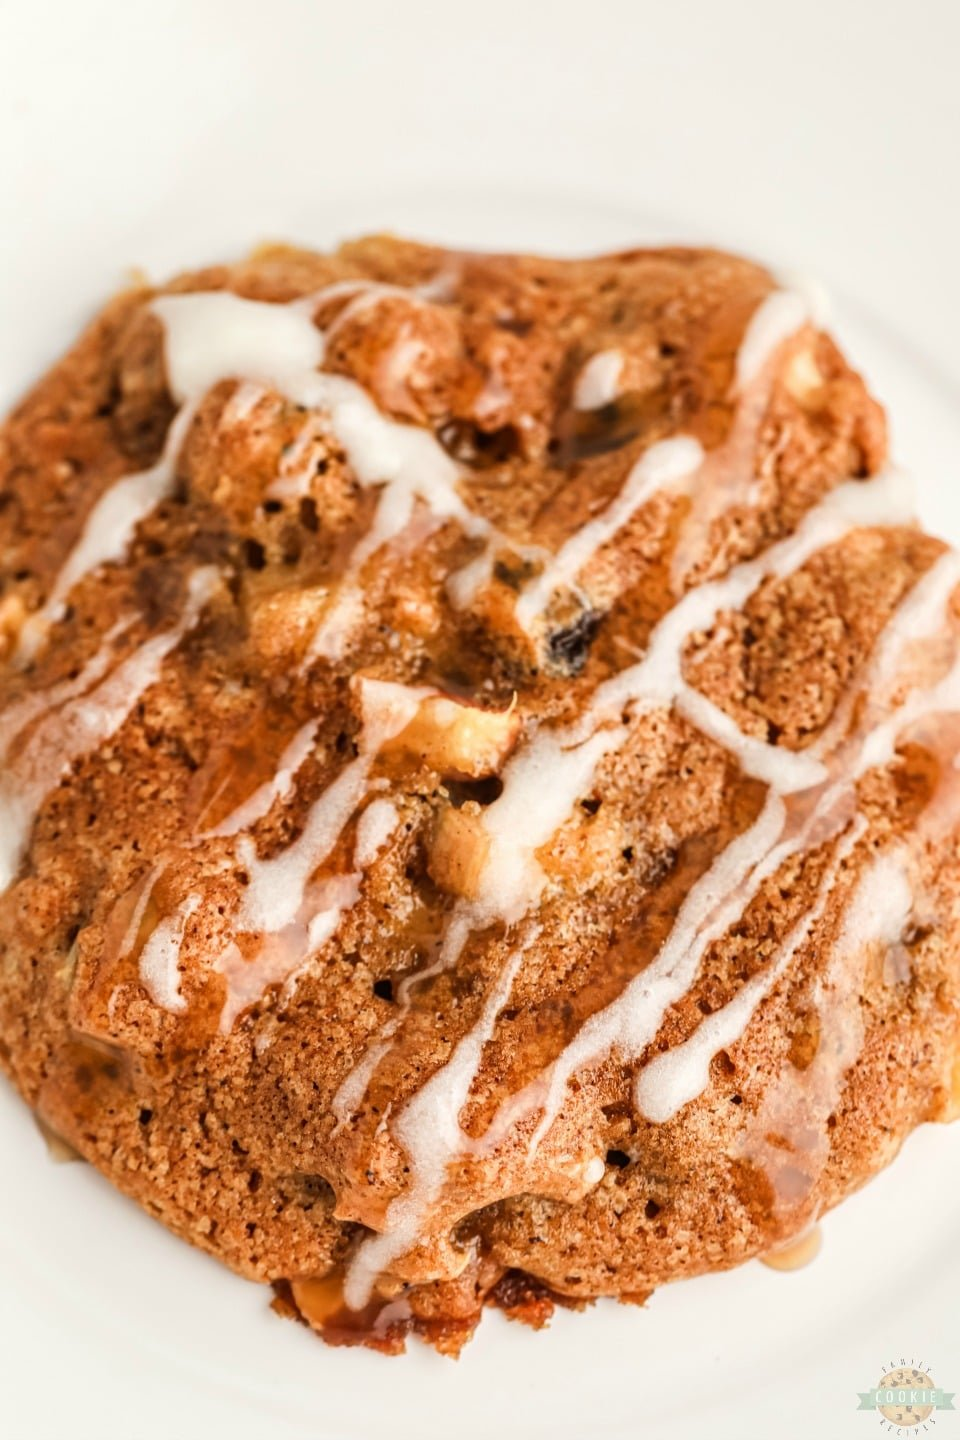 1632464571_198_SPICED-APPLE-COOKIES